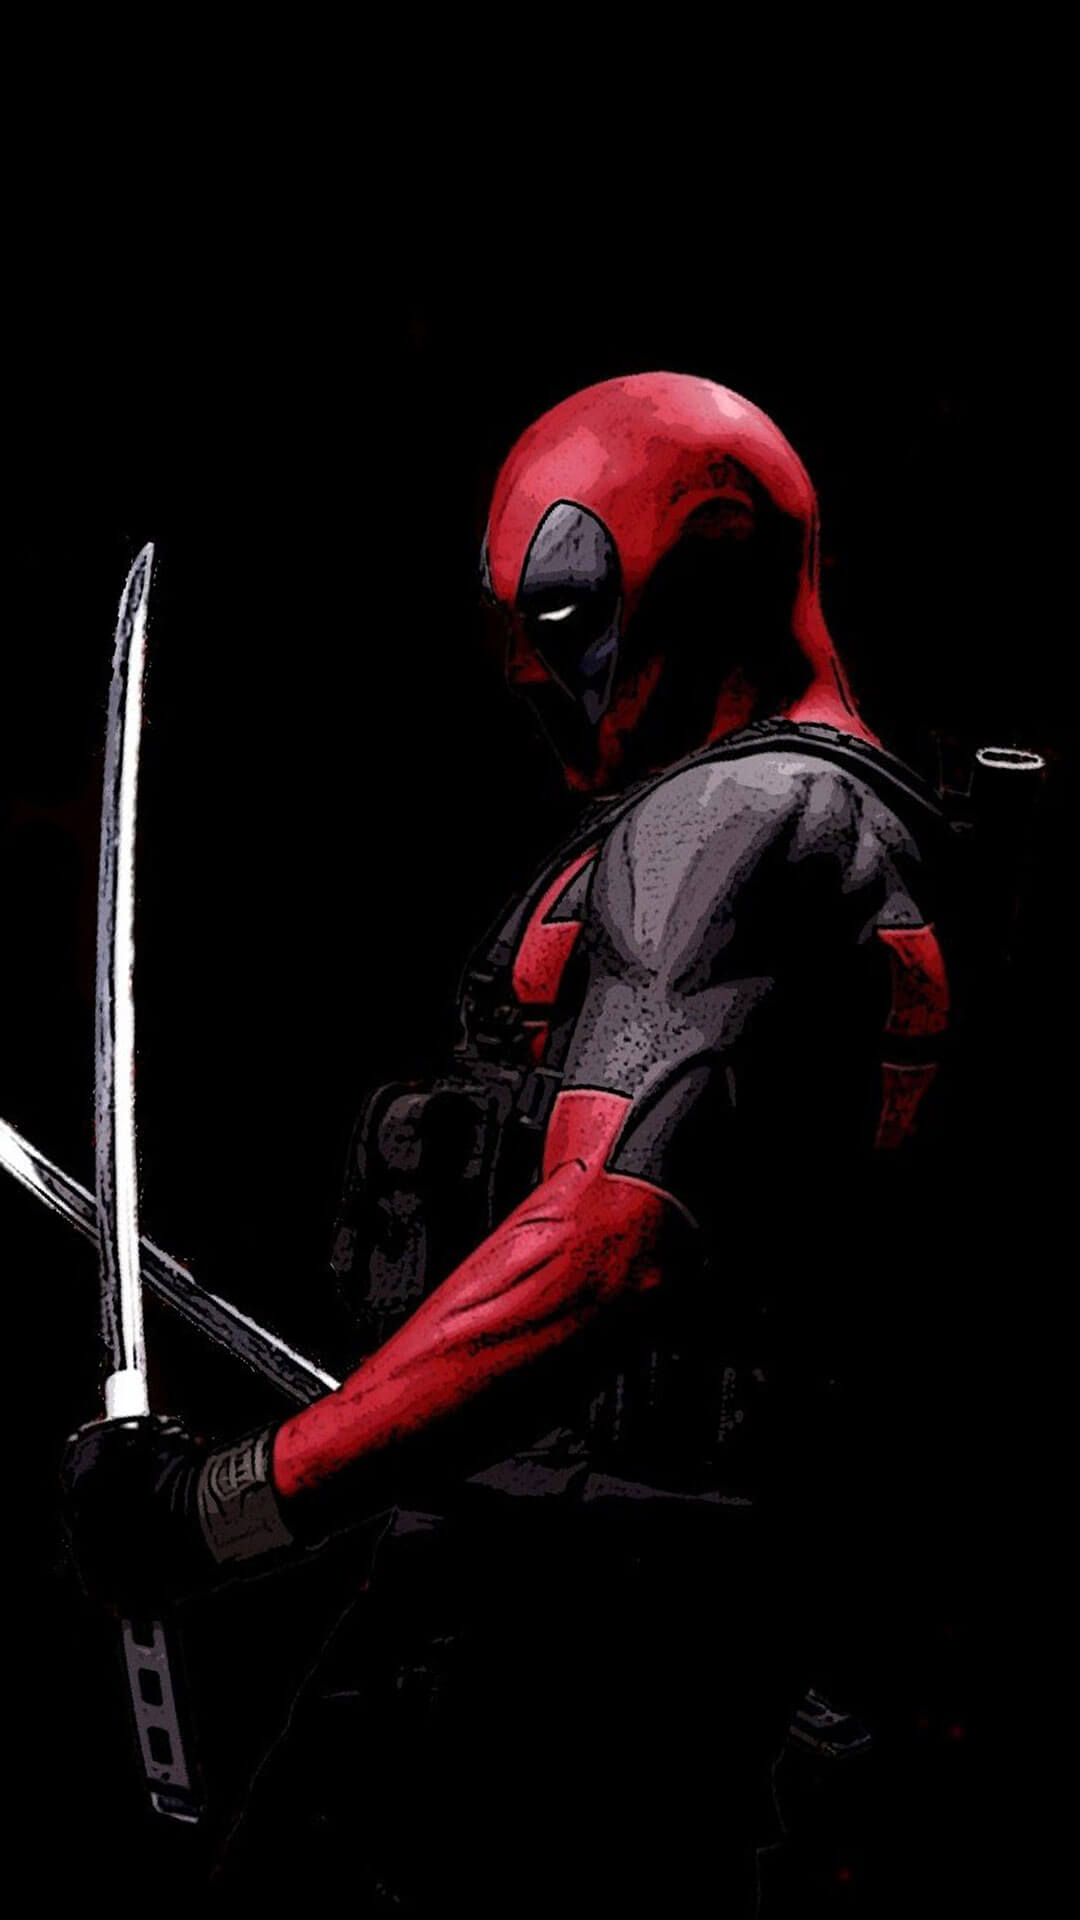 Deadpool Movie iPhone Wallpaper iPhone 5 iPhone 6 iPhone 6s and 1080x1920